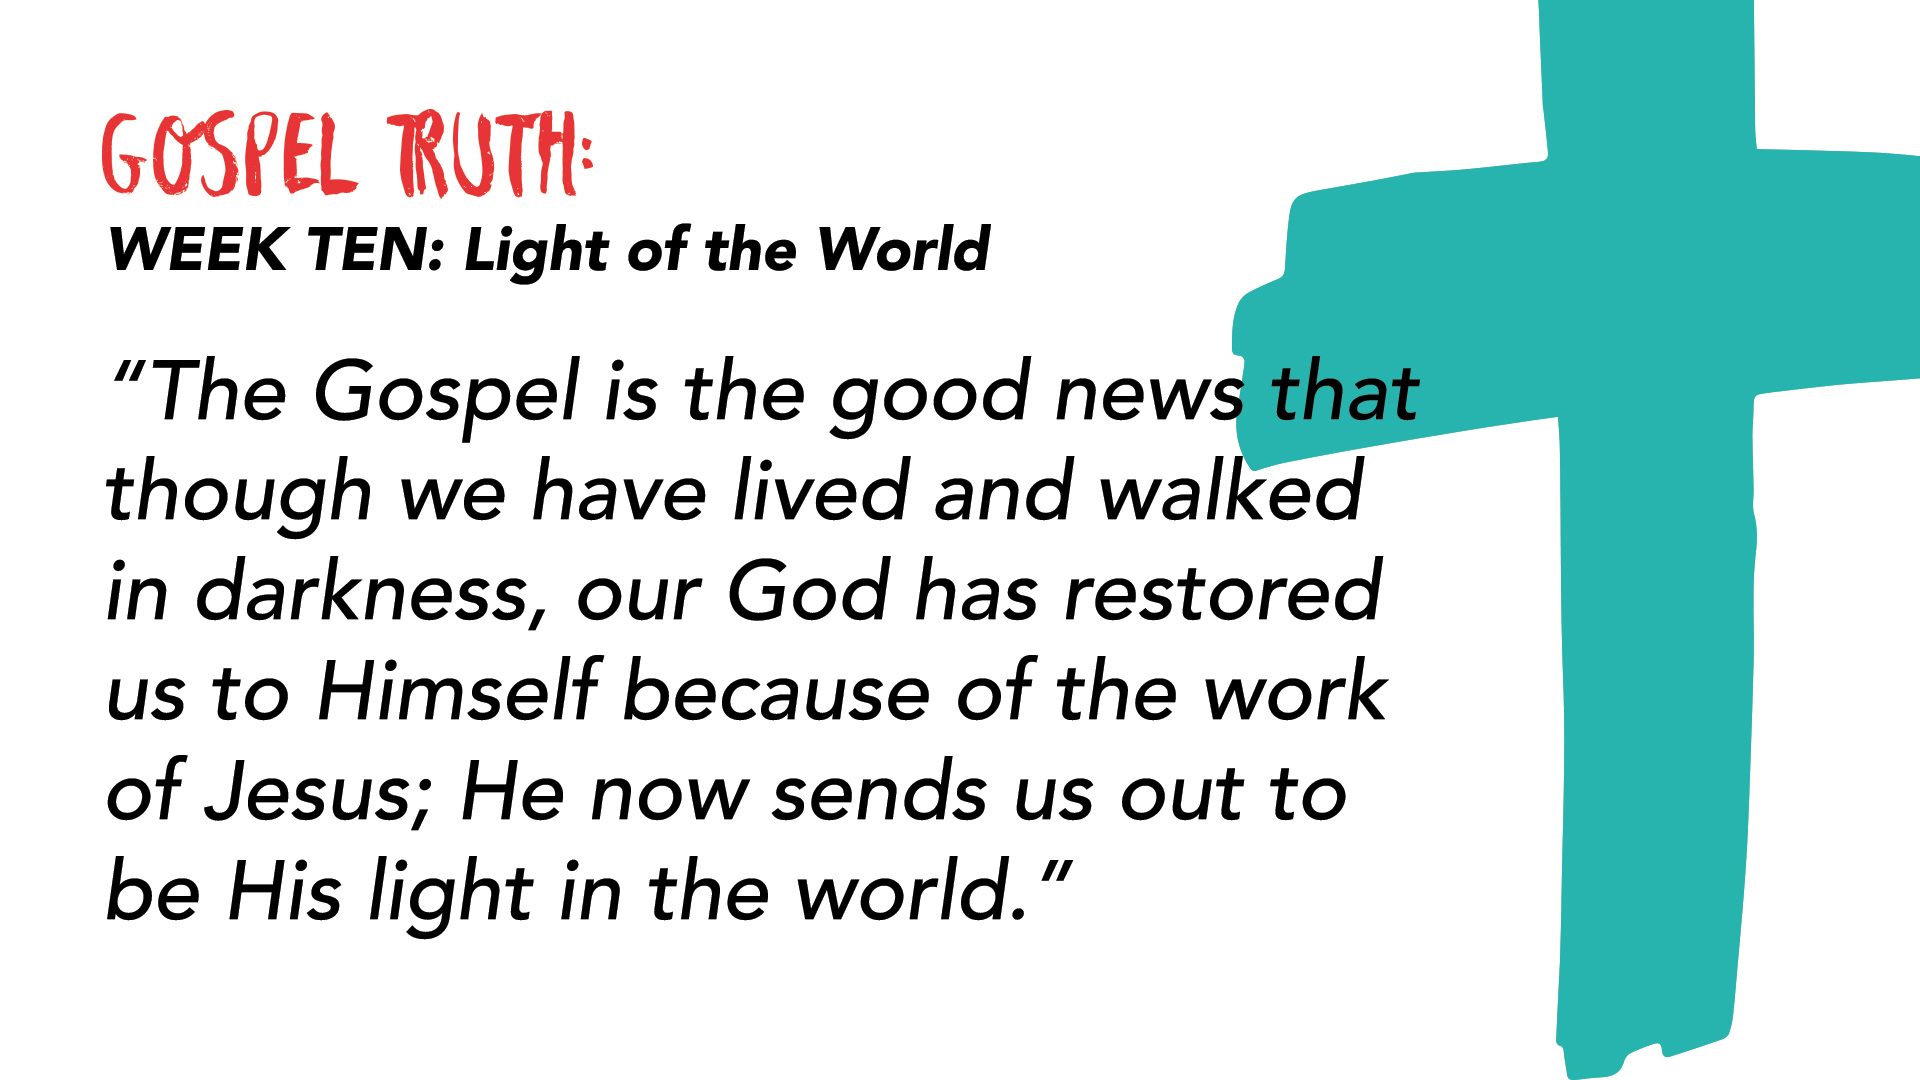 """The Gospel is the good news that though we have lived and walked in darkness, our God has restored us to Himself because of the work of Jesus; He now sends us out to be His light in the world."""